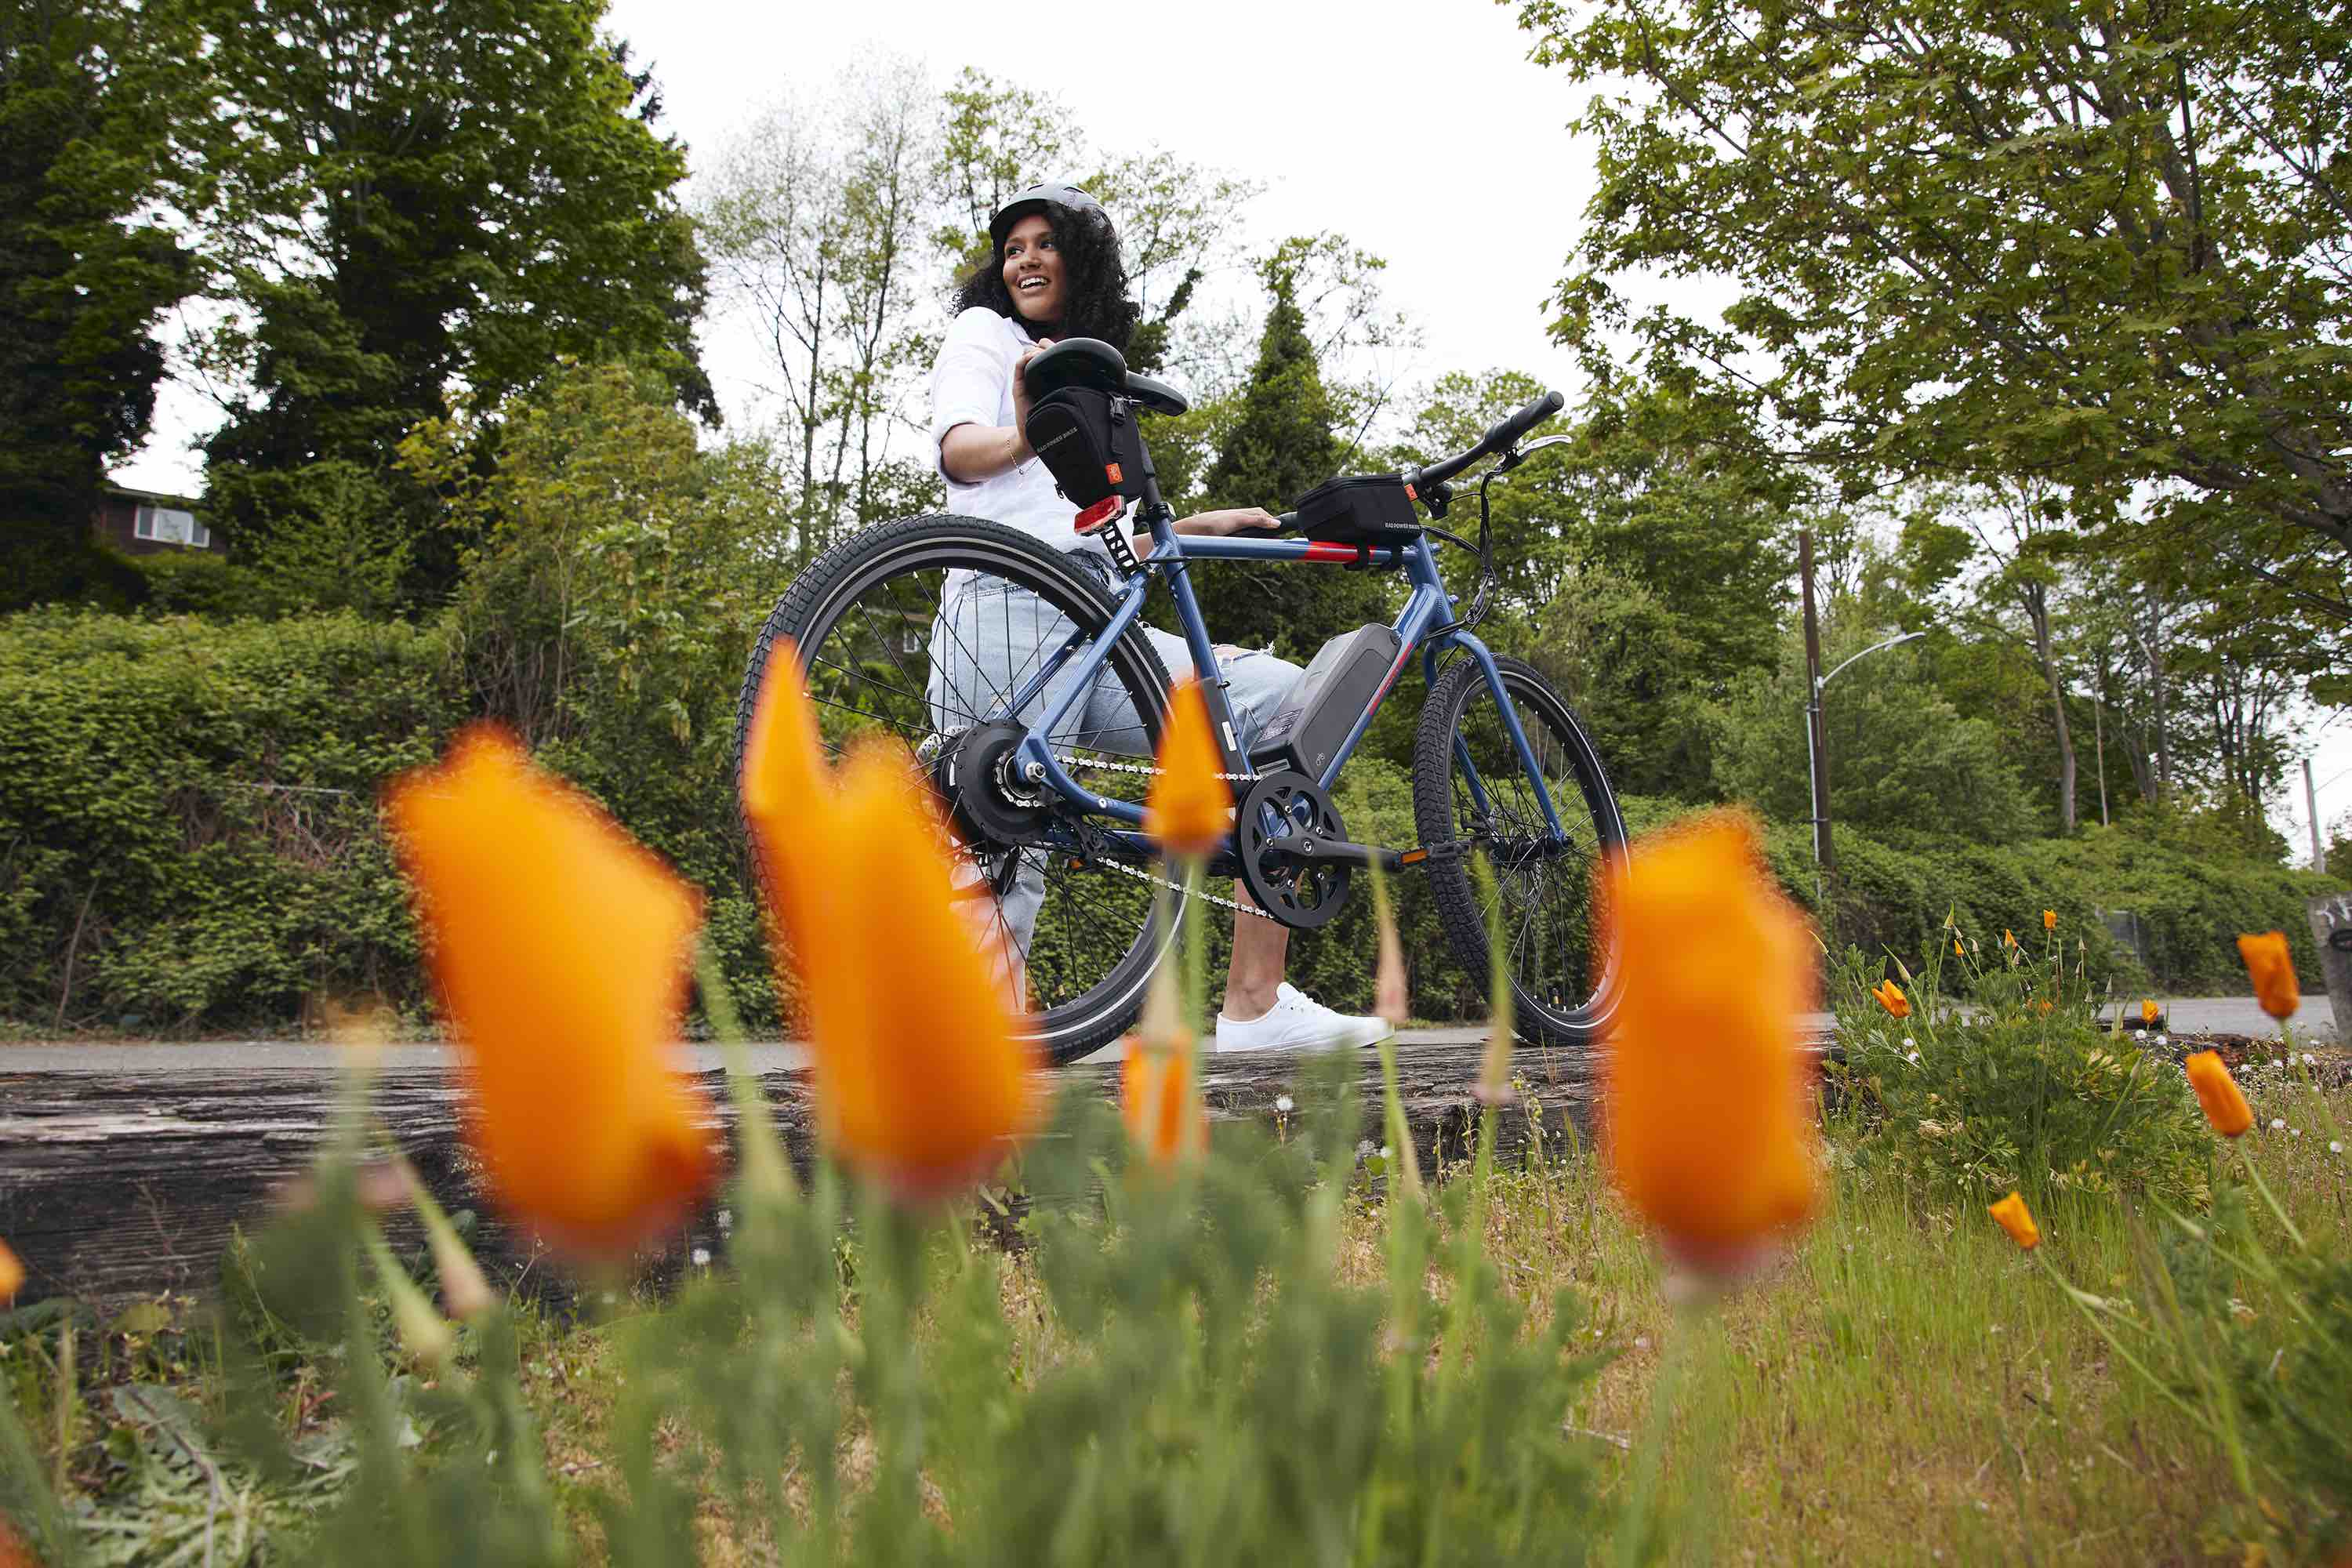 A woman poses next to her RadMission electric metro bike alongside spring flowers.